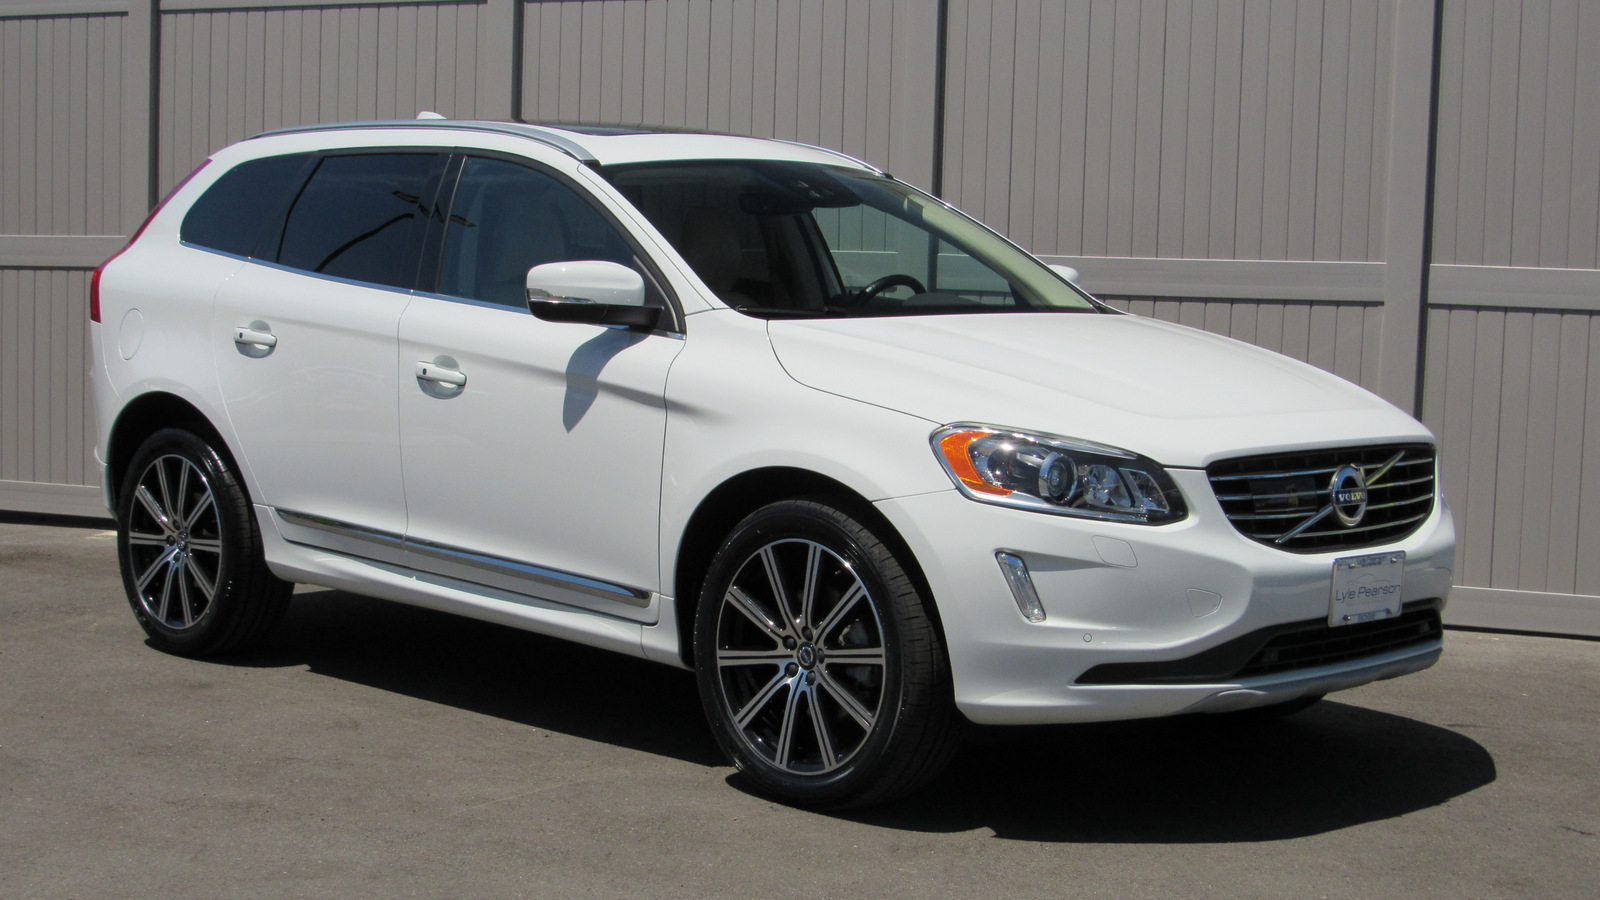 Pre-Owned 2016 Volvo XC60 AWD 4dr T6 Drive-E Platinum